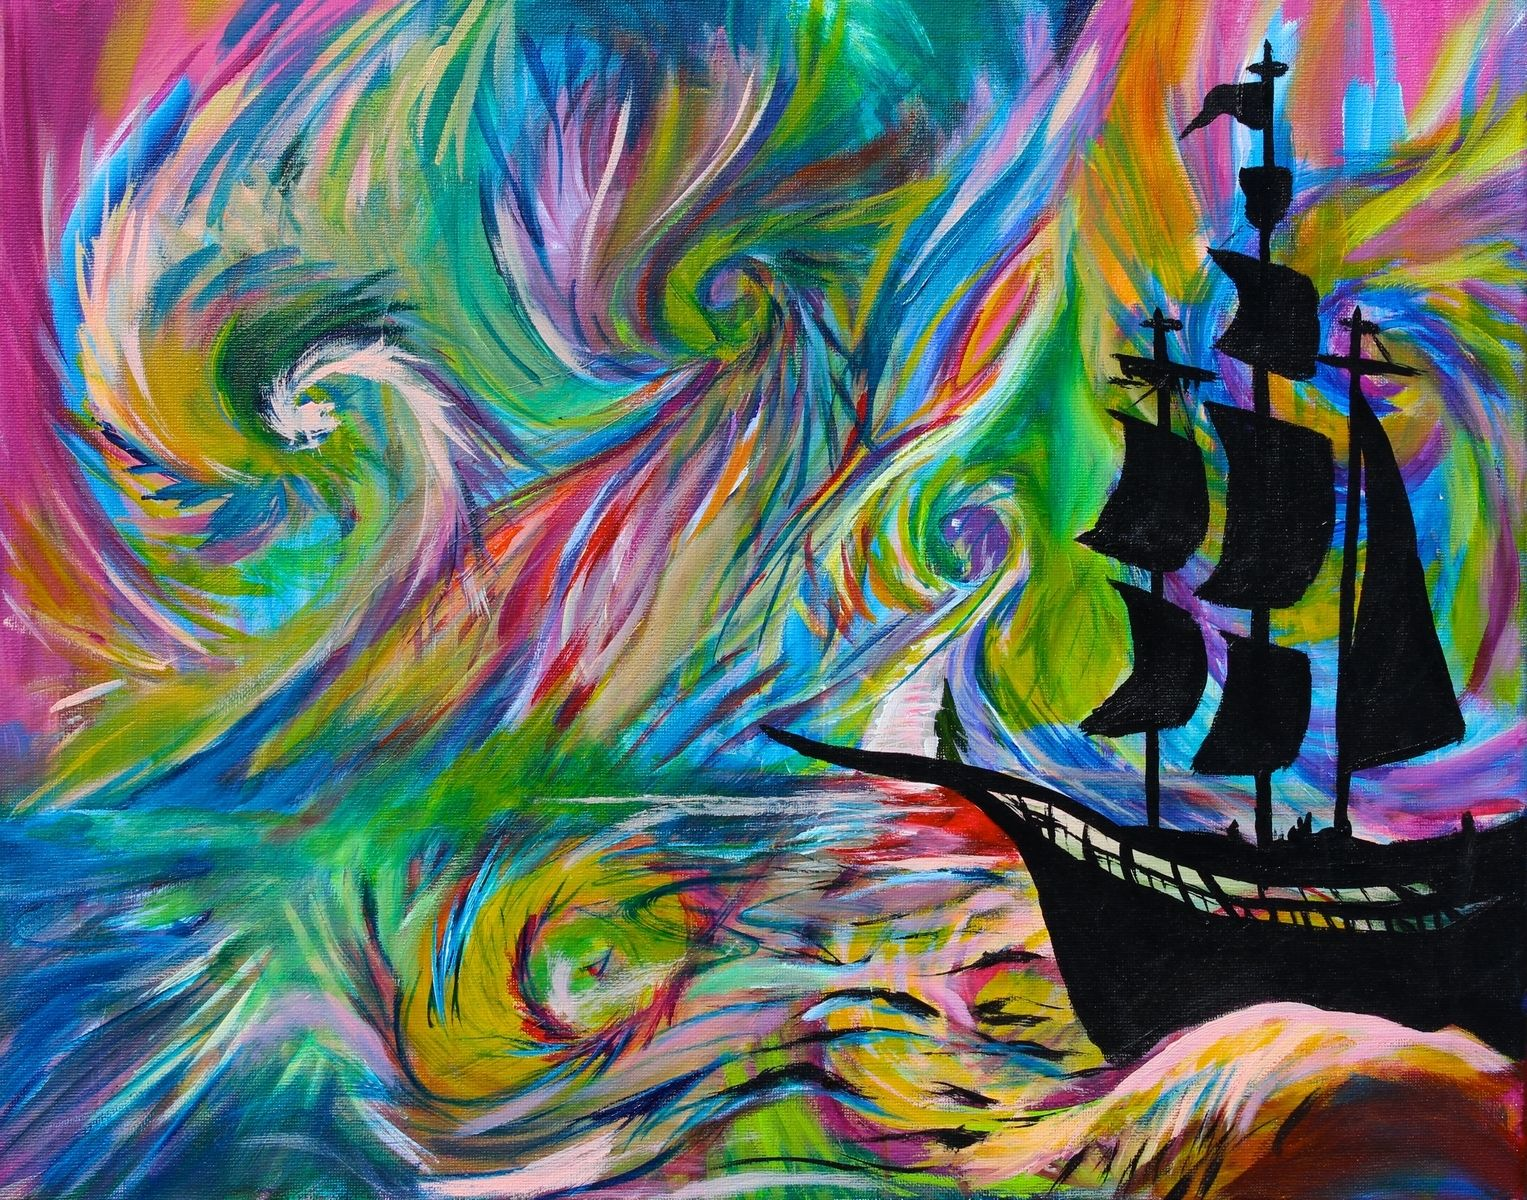 Handmade Painting  Psychedelic Ship Pirate Ship Silhouette Abstract Trippy by Big Bang - Buddha Inspired Home Decor